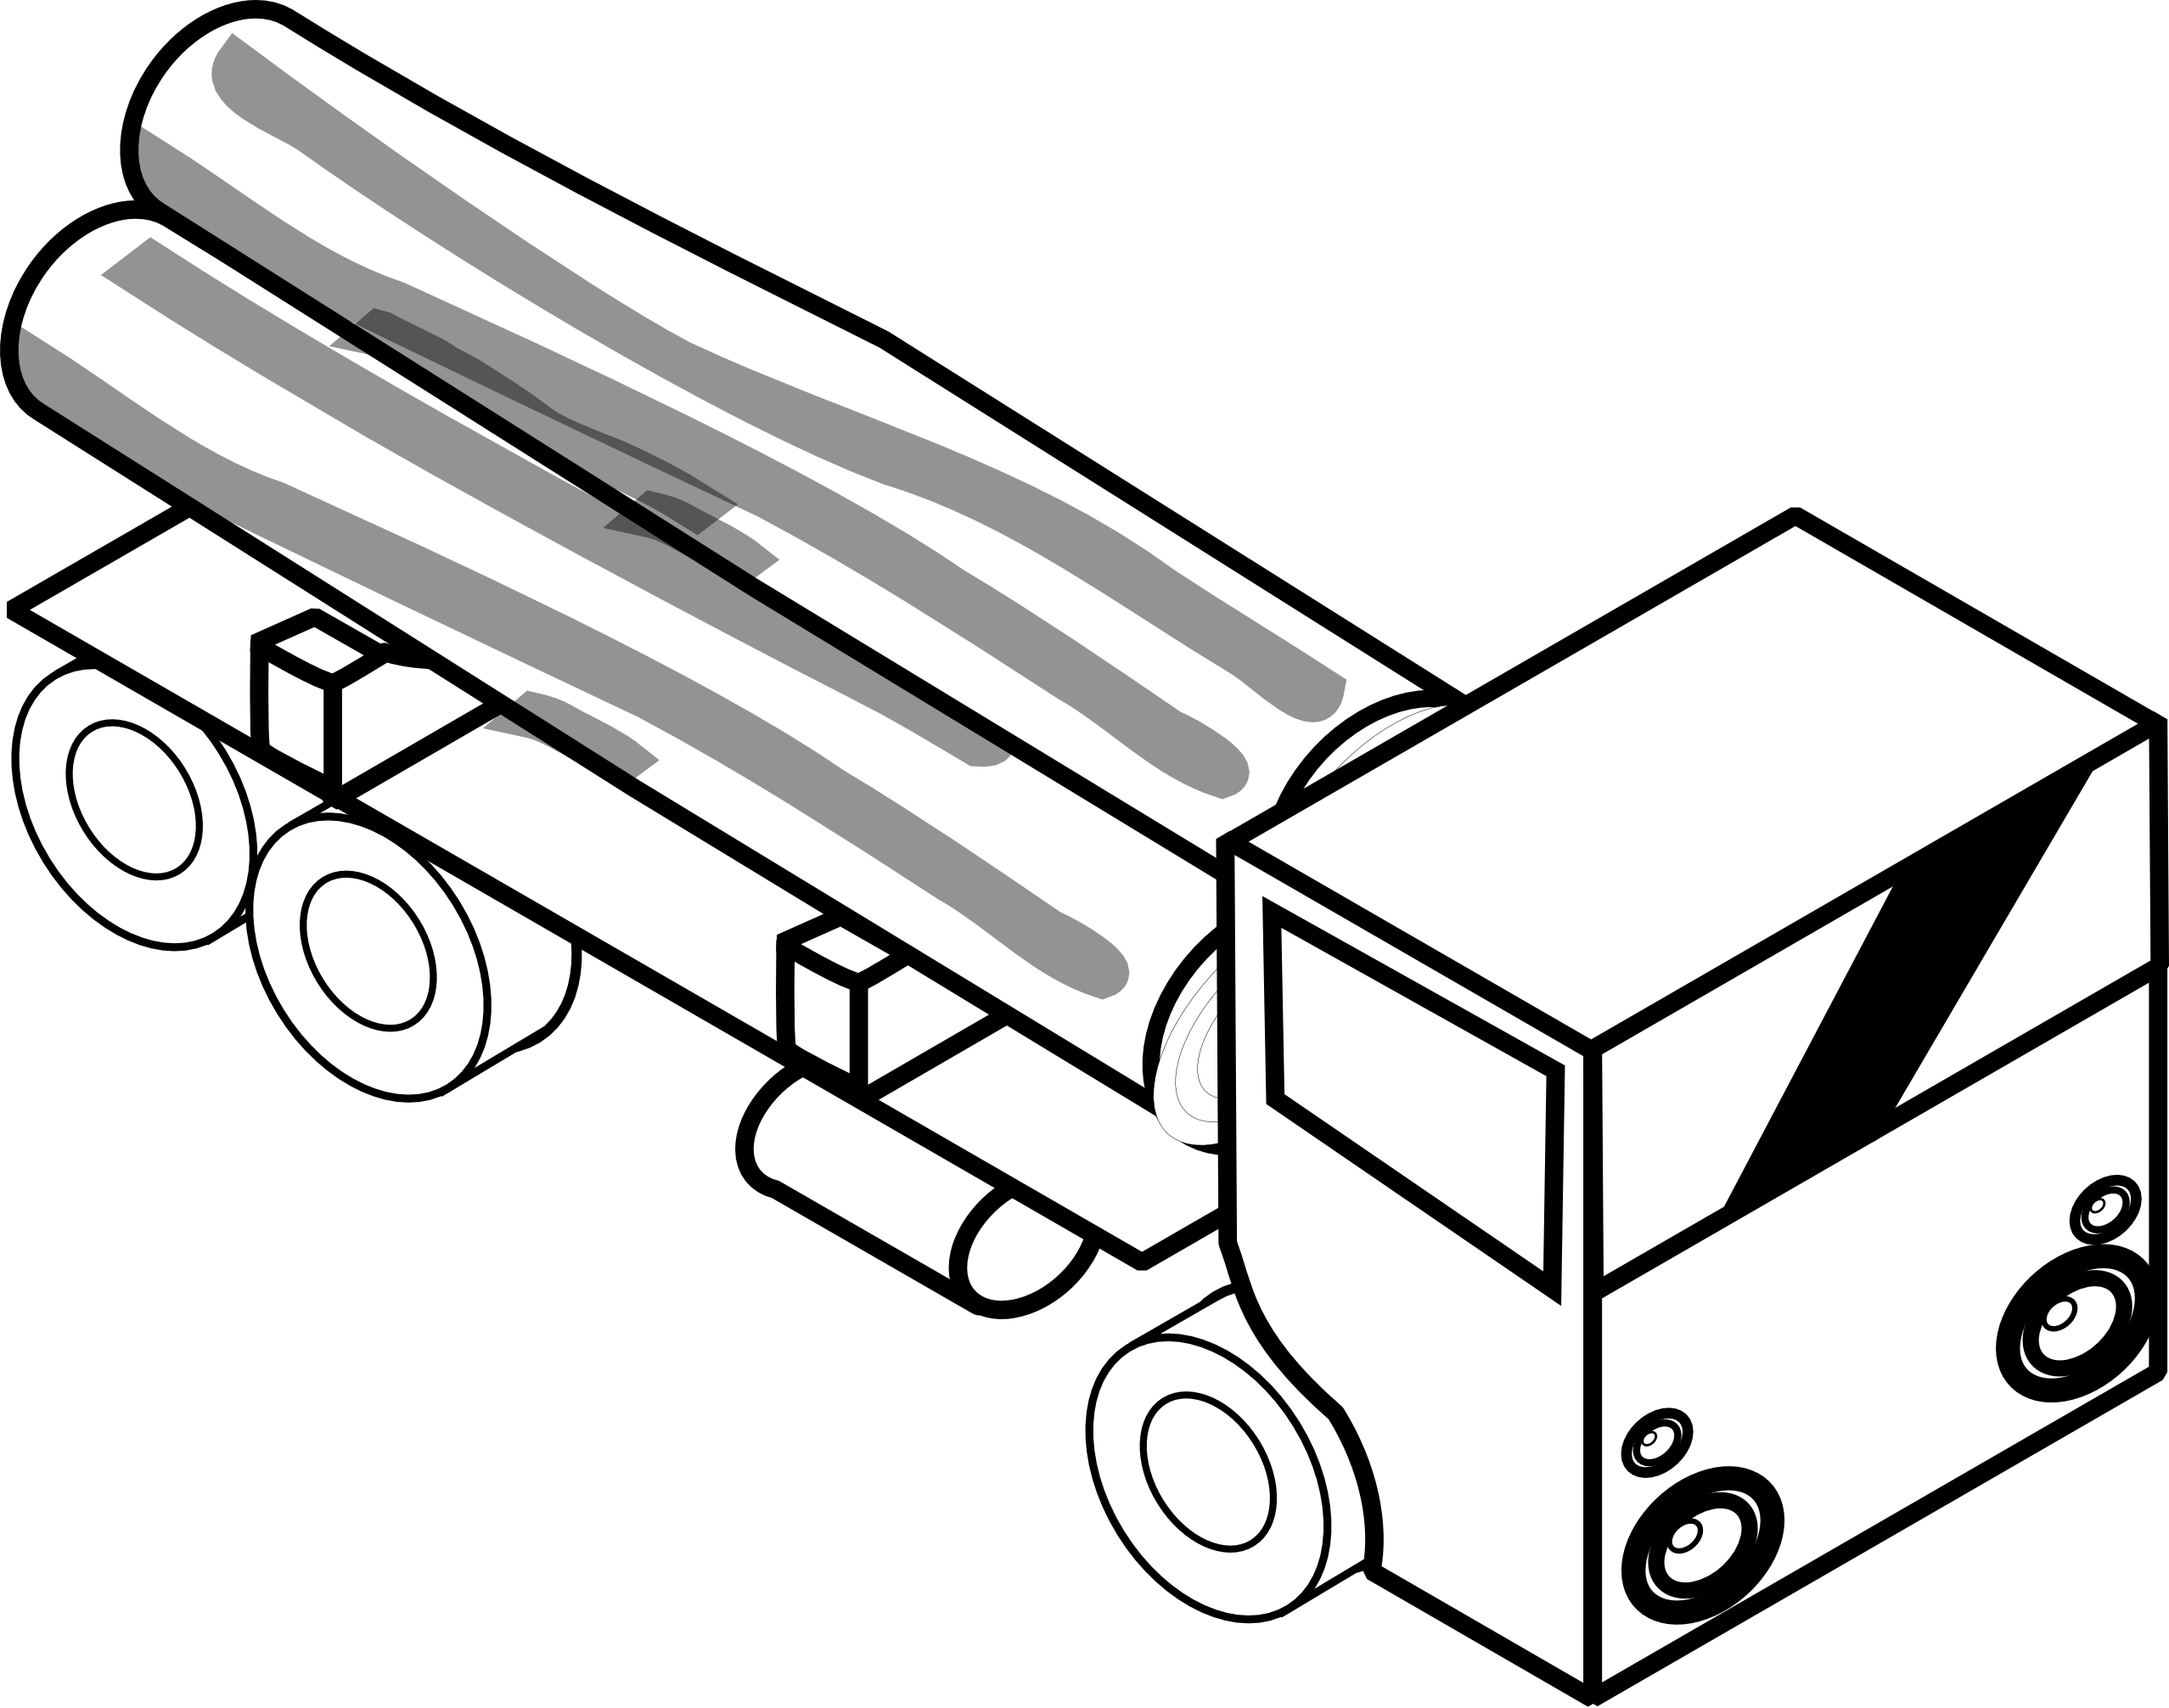 Old truck drawing at getdrawings free for personal use old old truck drawing 21 old truck